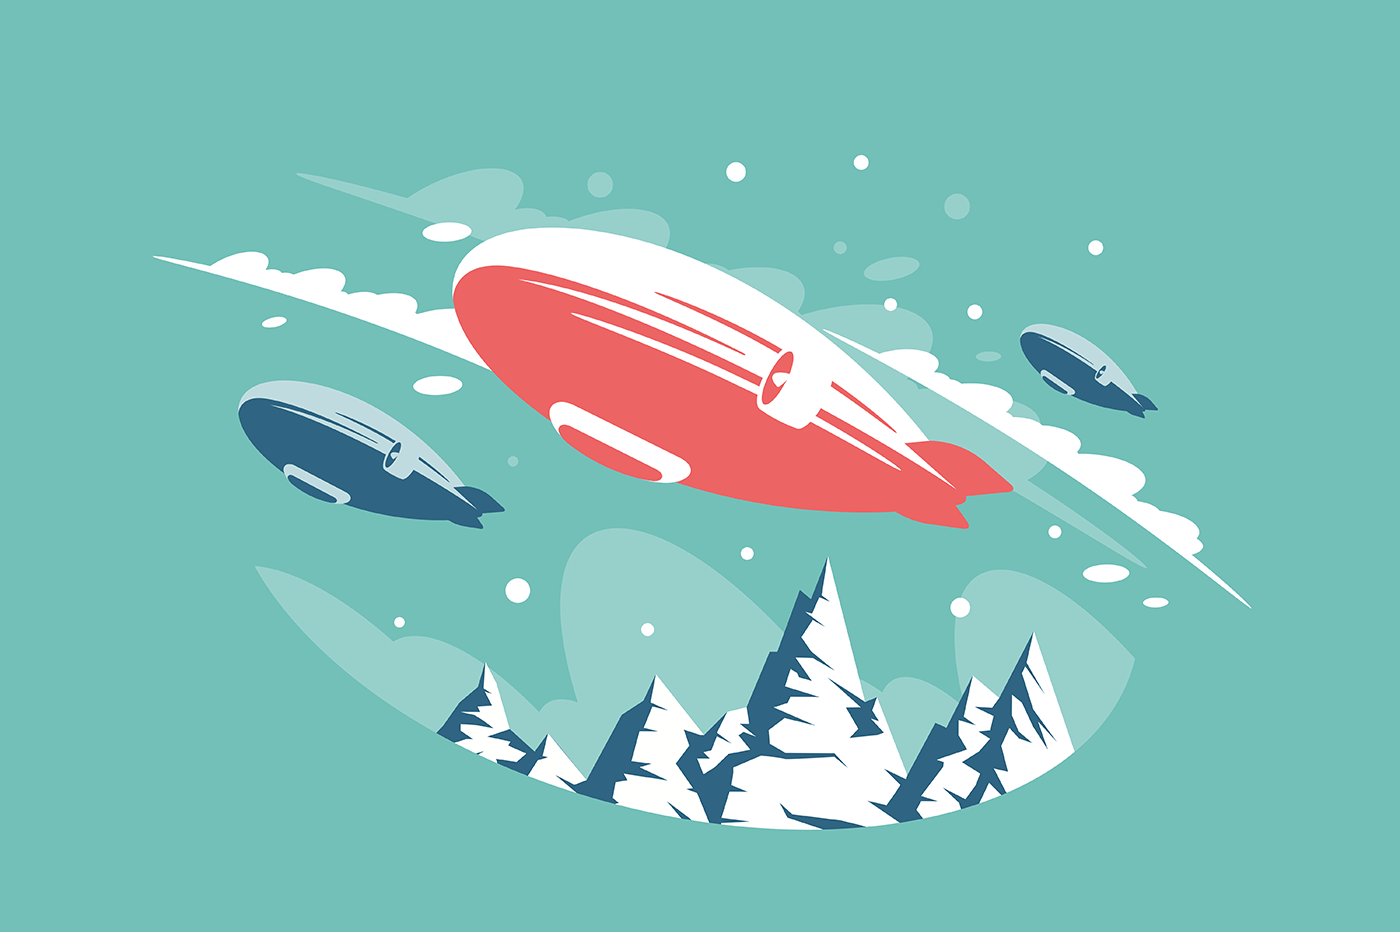 Airships in air above snowy mountains.